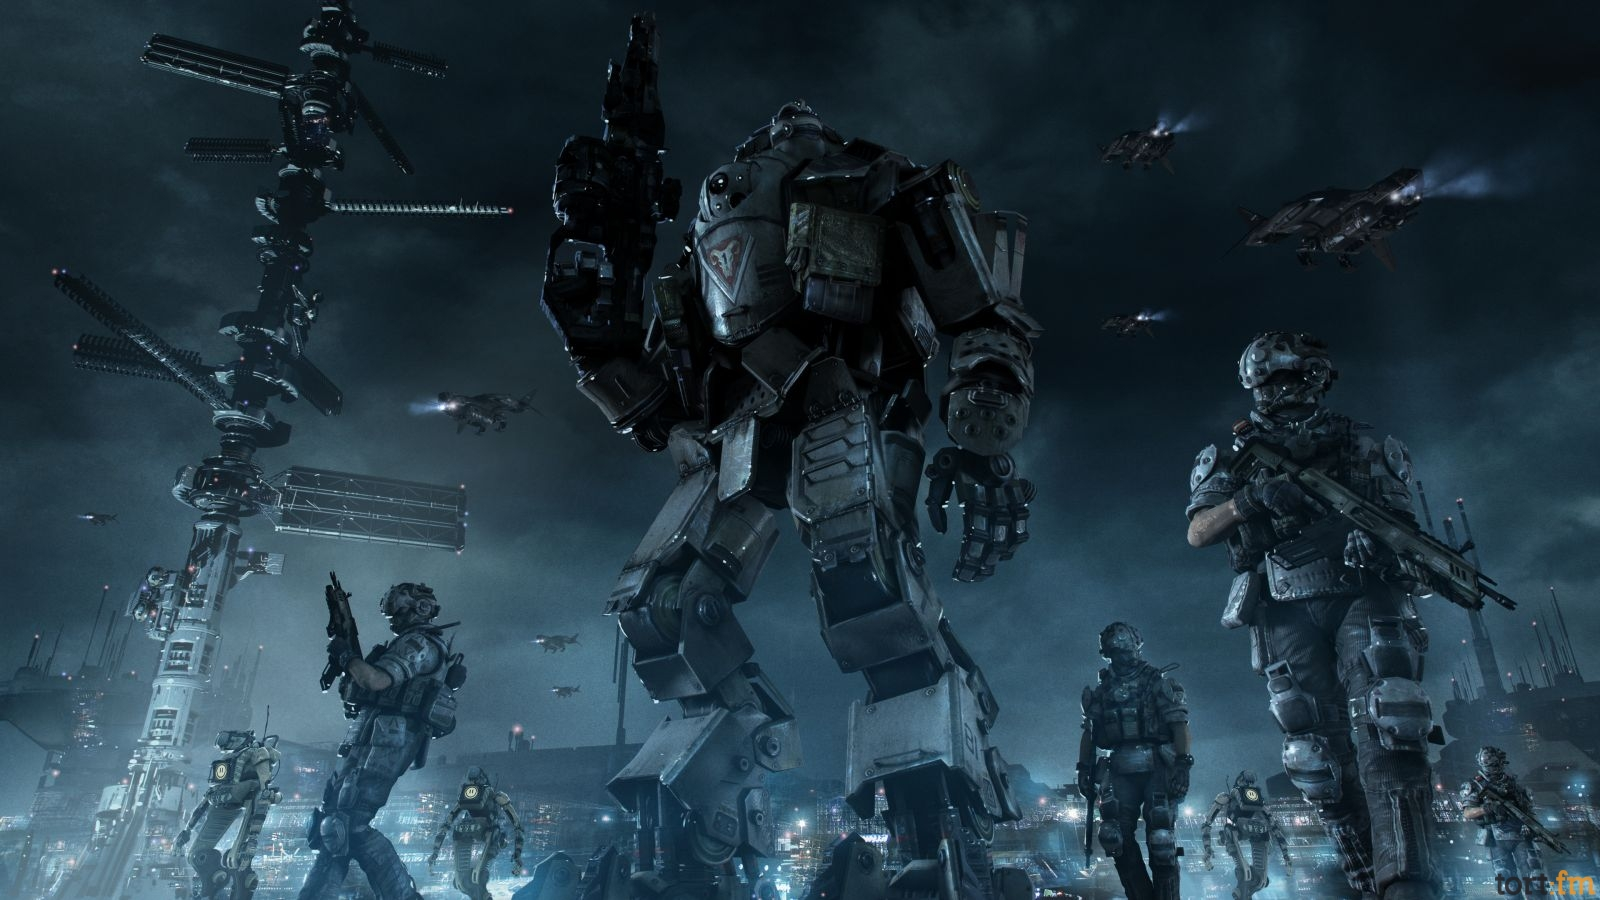 Titanfall on Xbox 360 gets Expedition DLC in June